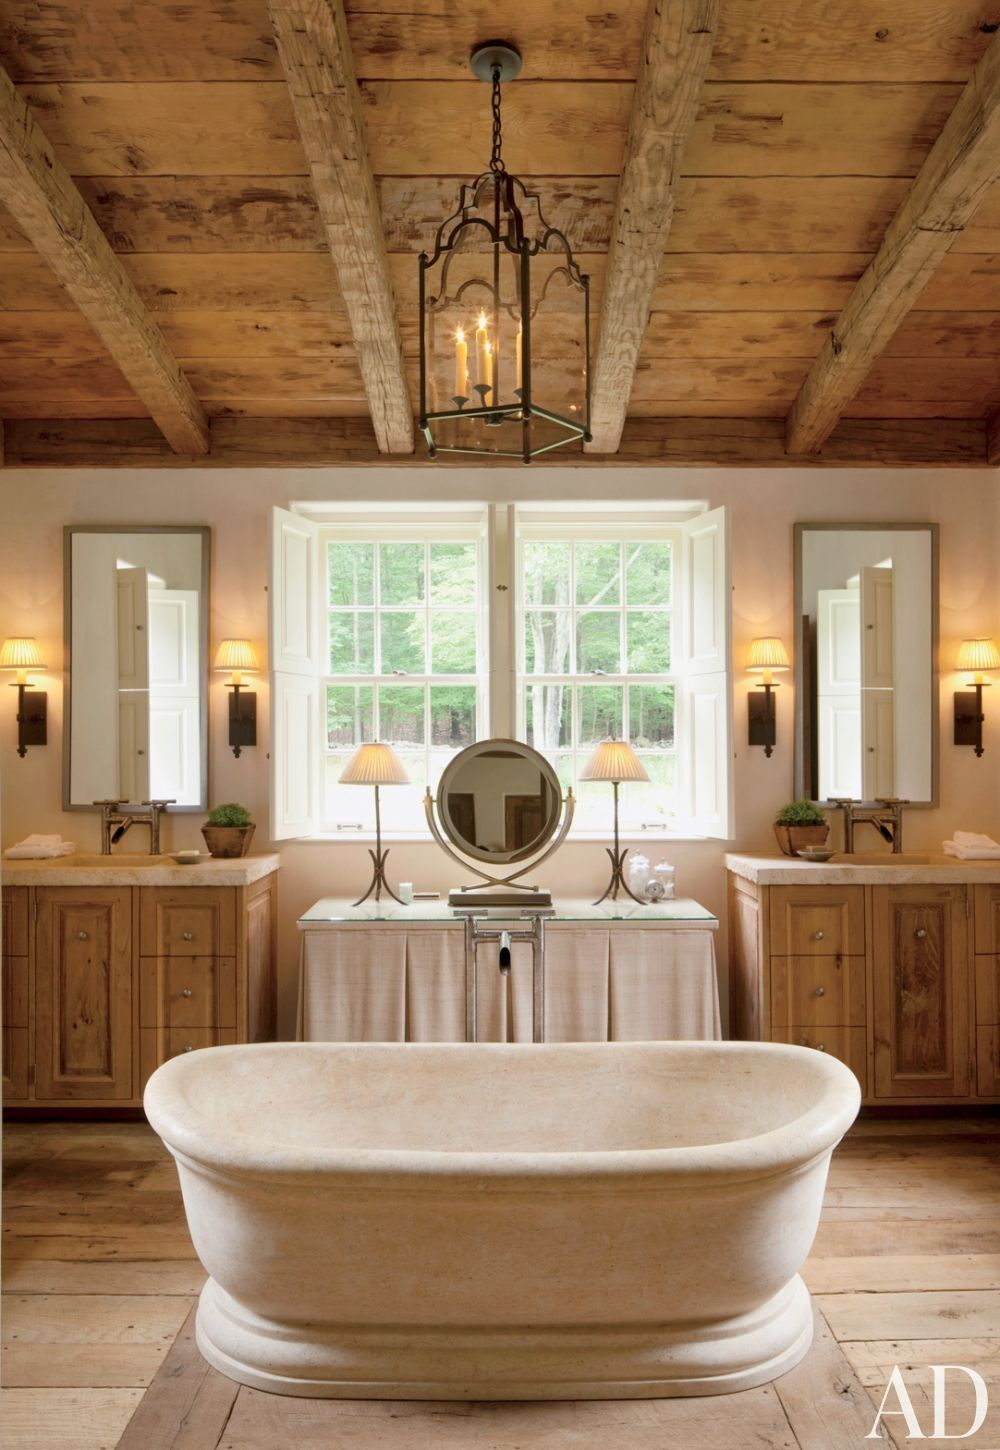 Rustic modern bathroom ideas - Rustic Modern Bathroom Ideas